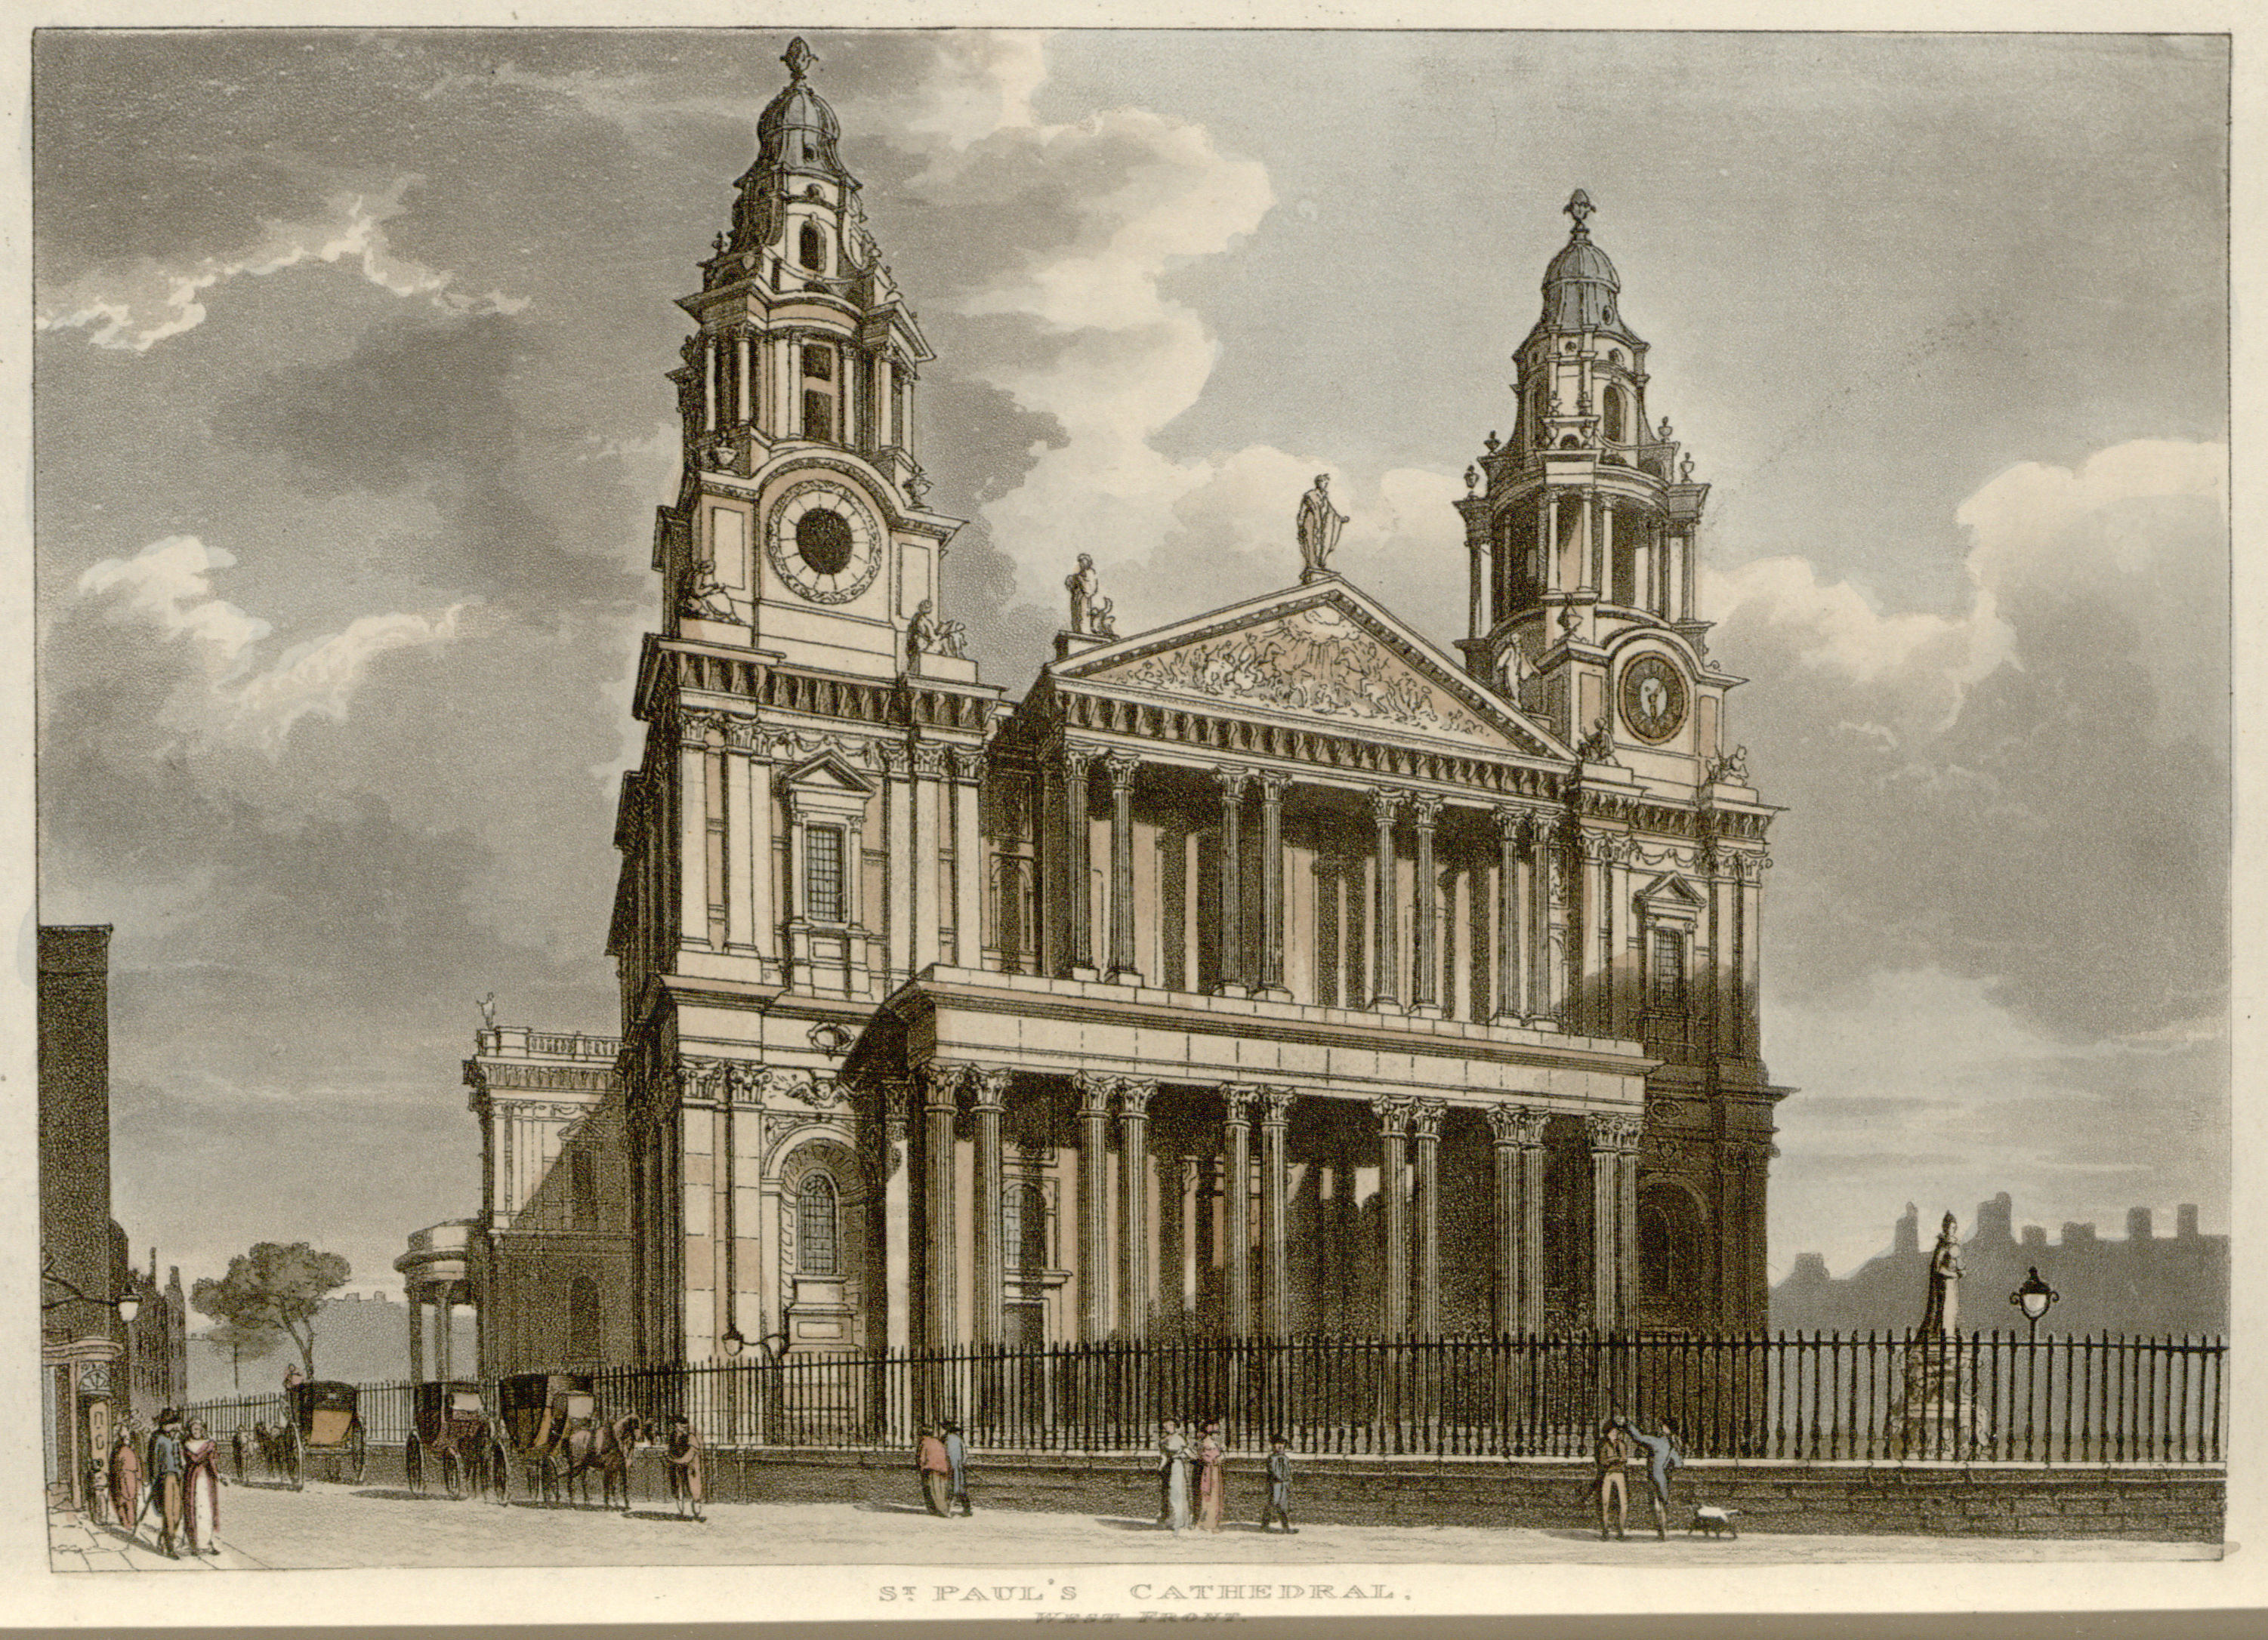 57 - Papworth - St Paul's Cathedral, West Front